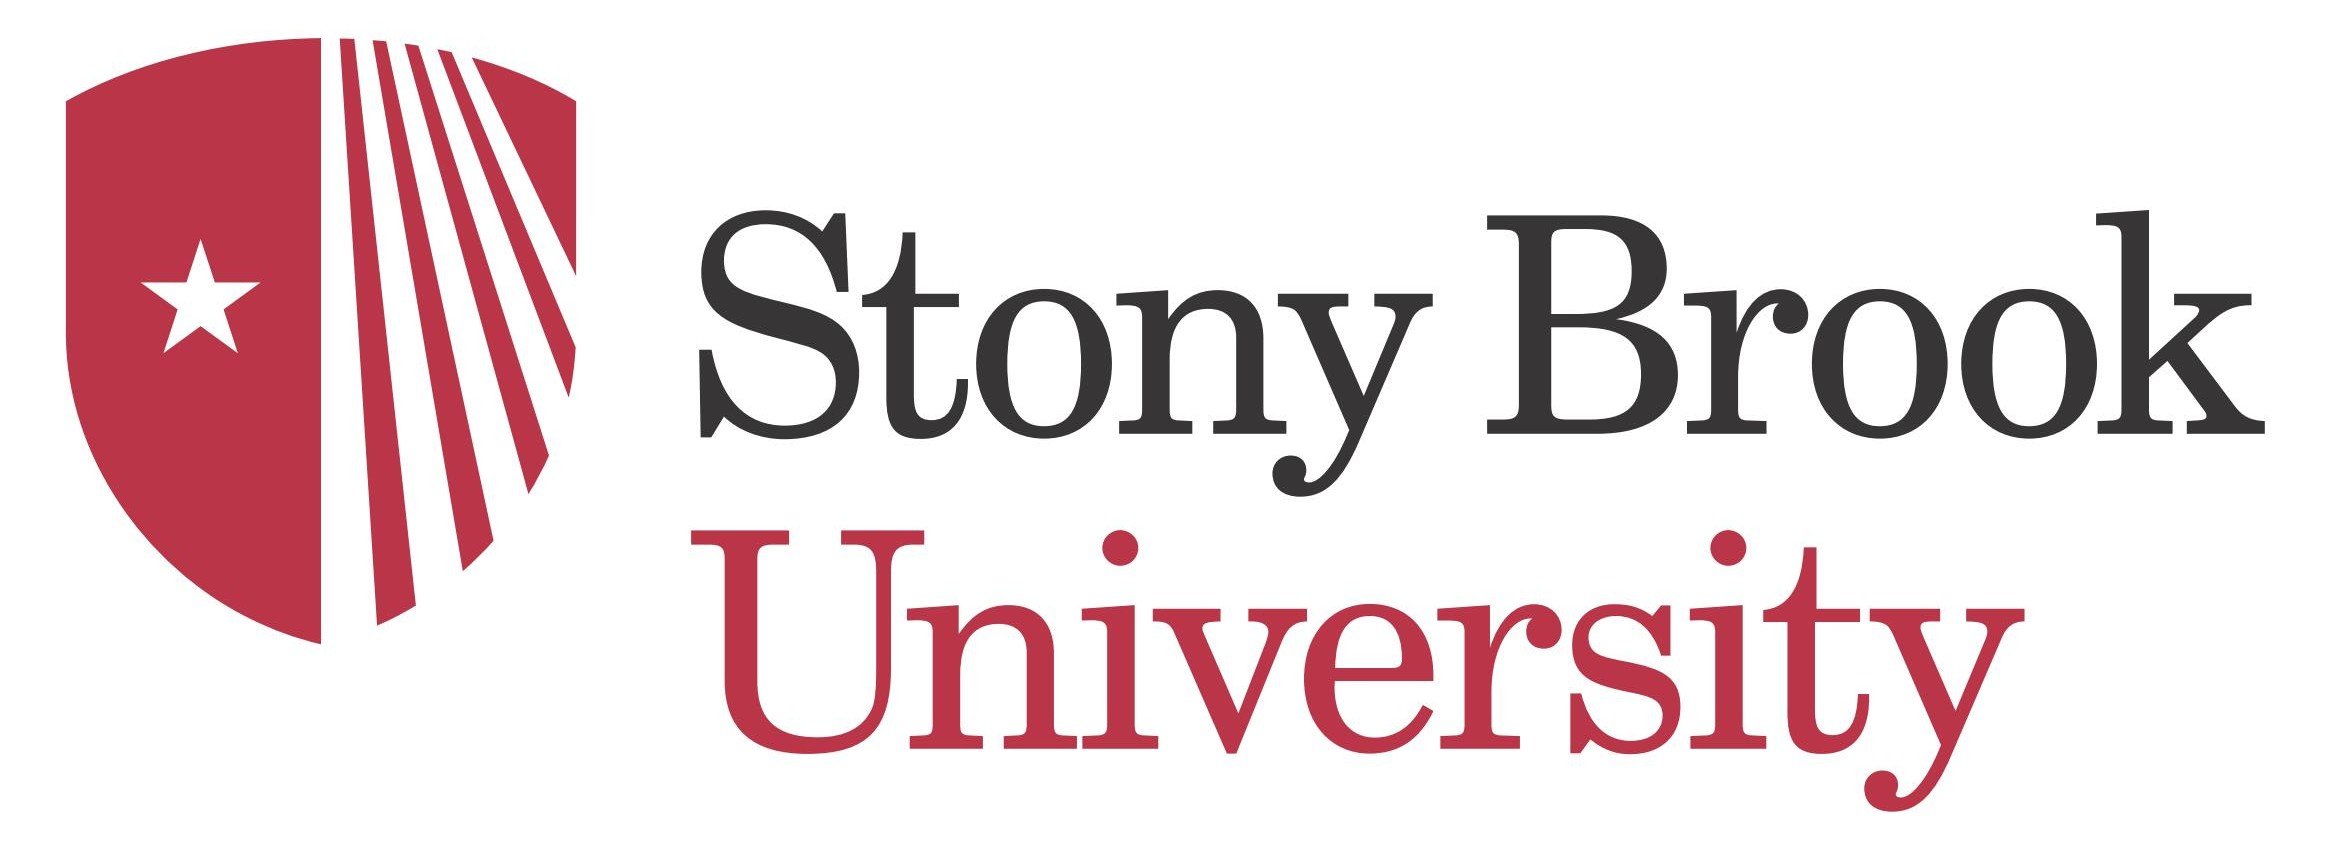 Stony-Brook-University-logo